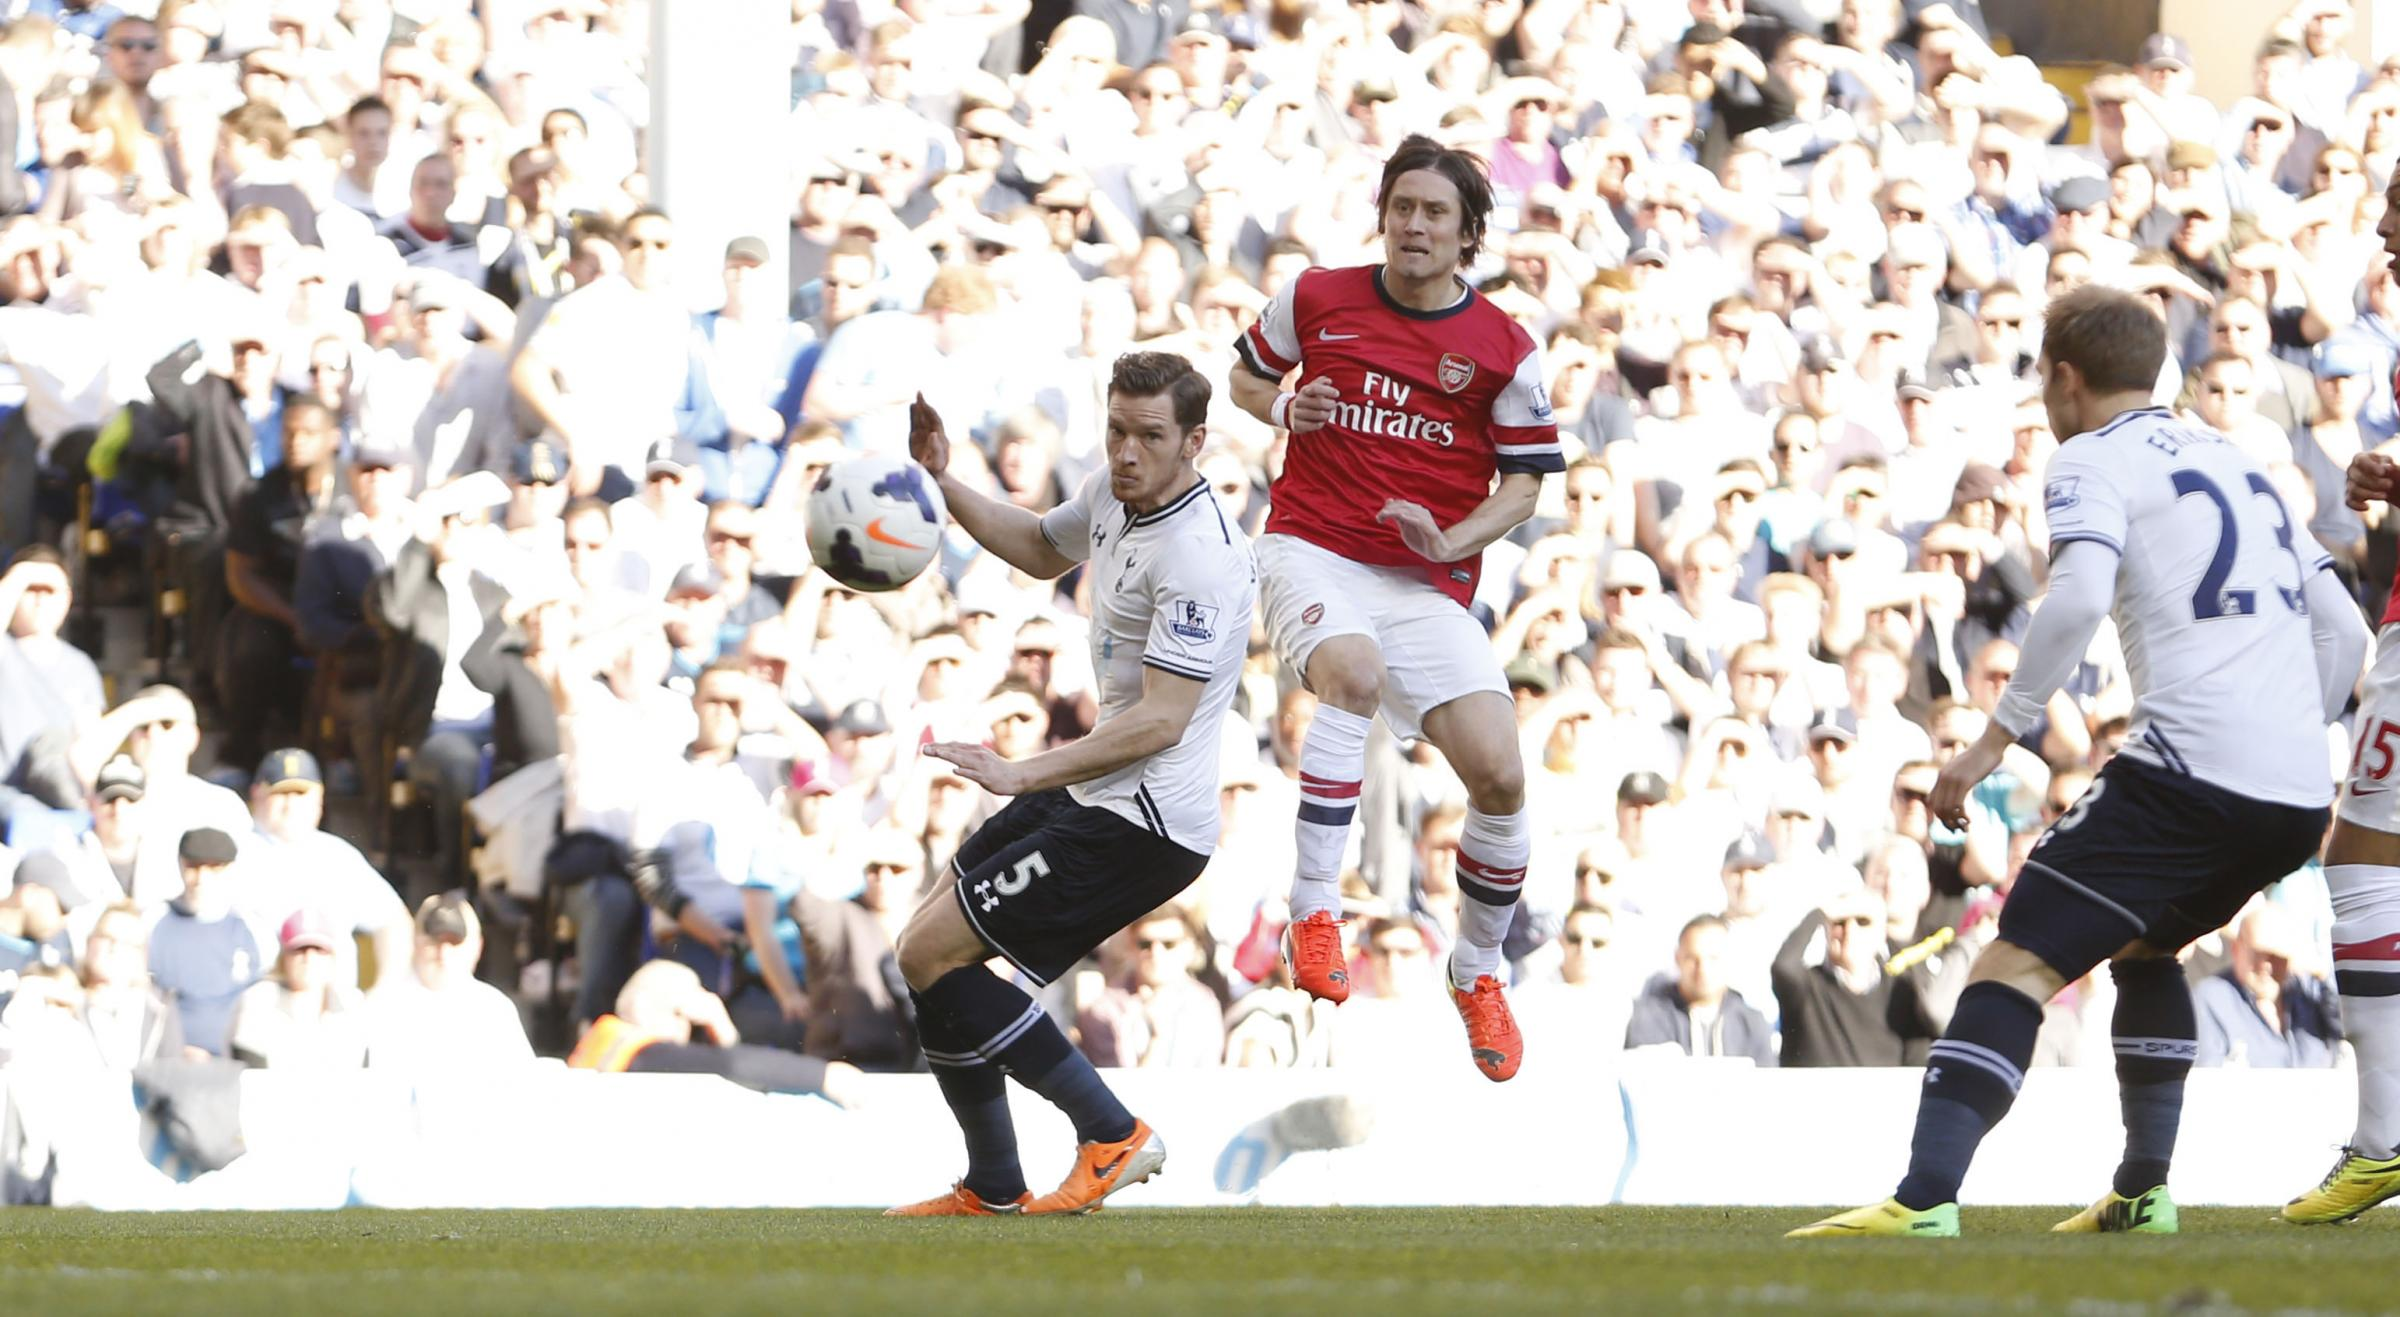 Tomas Rosicky's second minute wonder strike was enough to decide the end-to-end derby